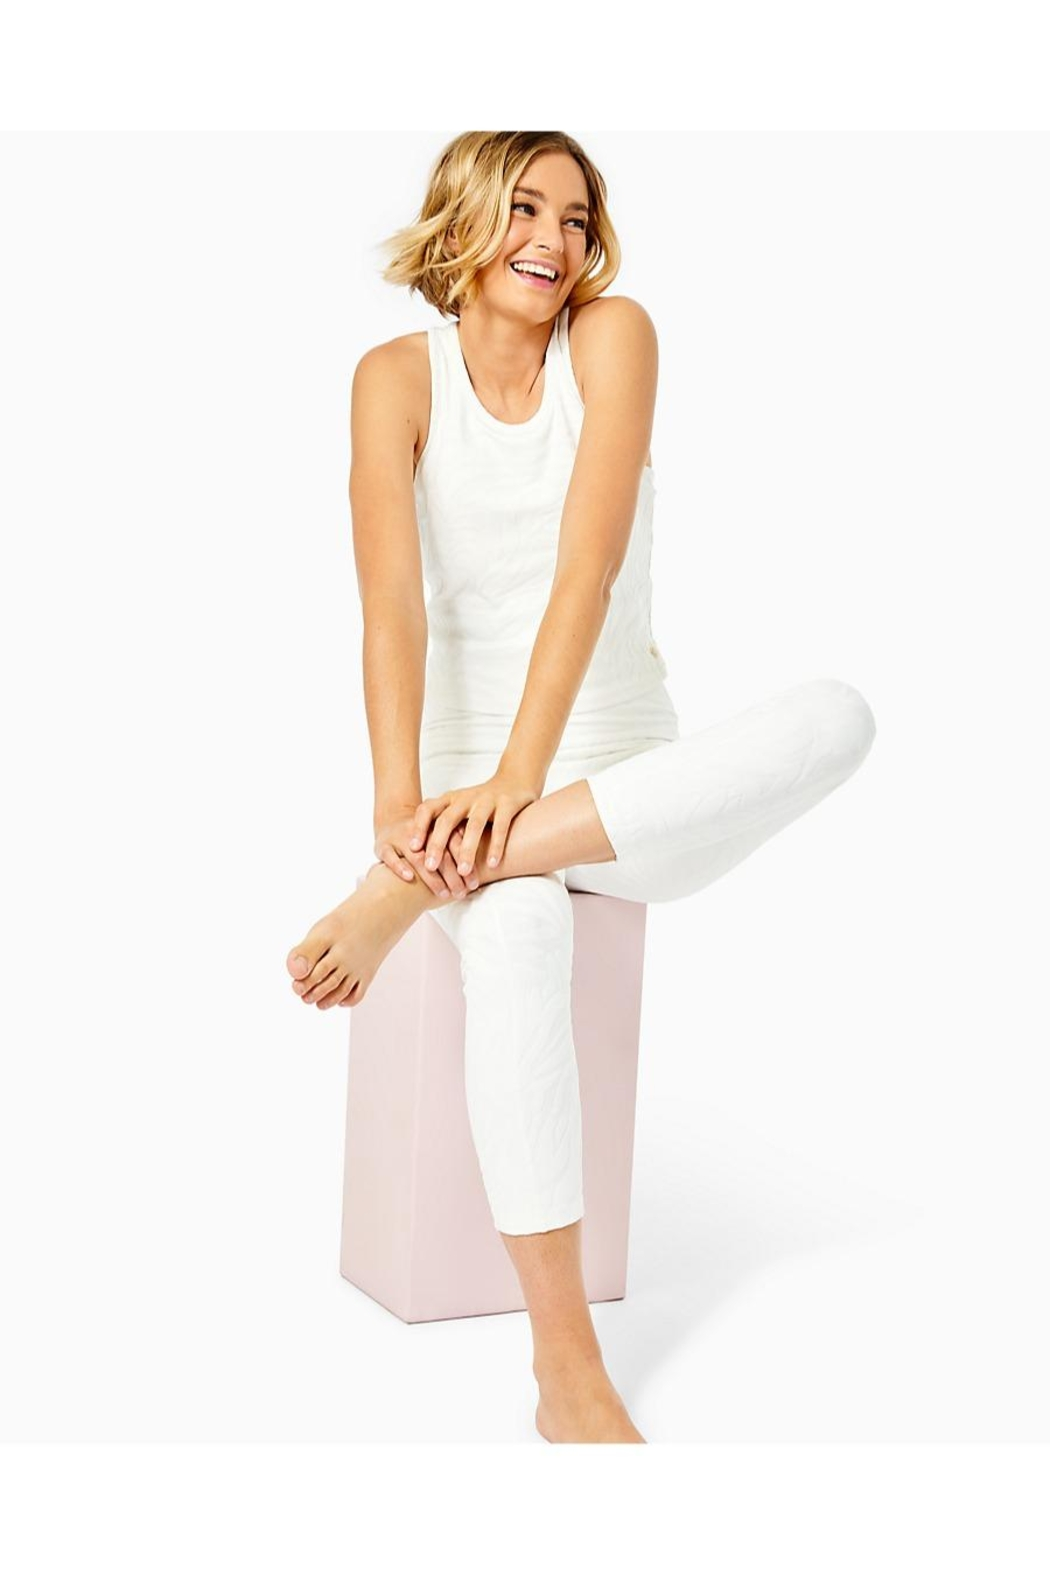 Lilly Pulitzer Luxletic Vanti Tank-Top - Side Cropped Image